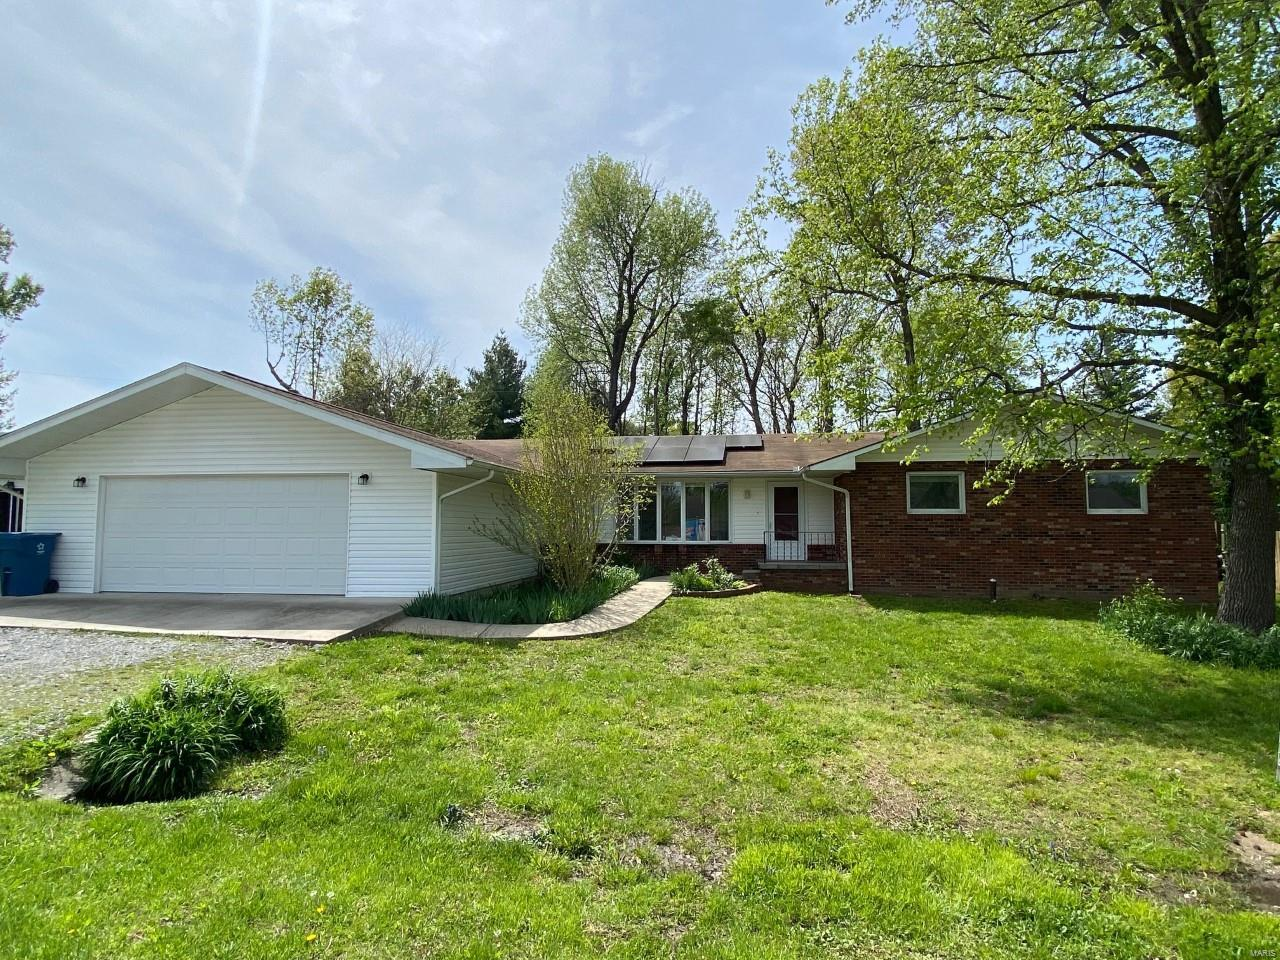 113 Weisbrook Property Photo - Carterville, IL real estate listing